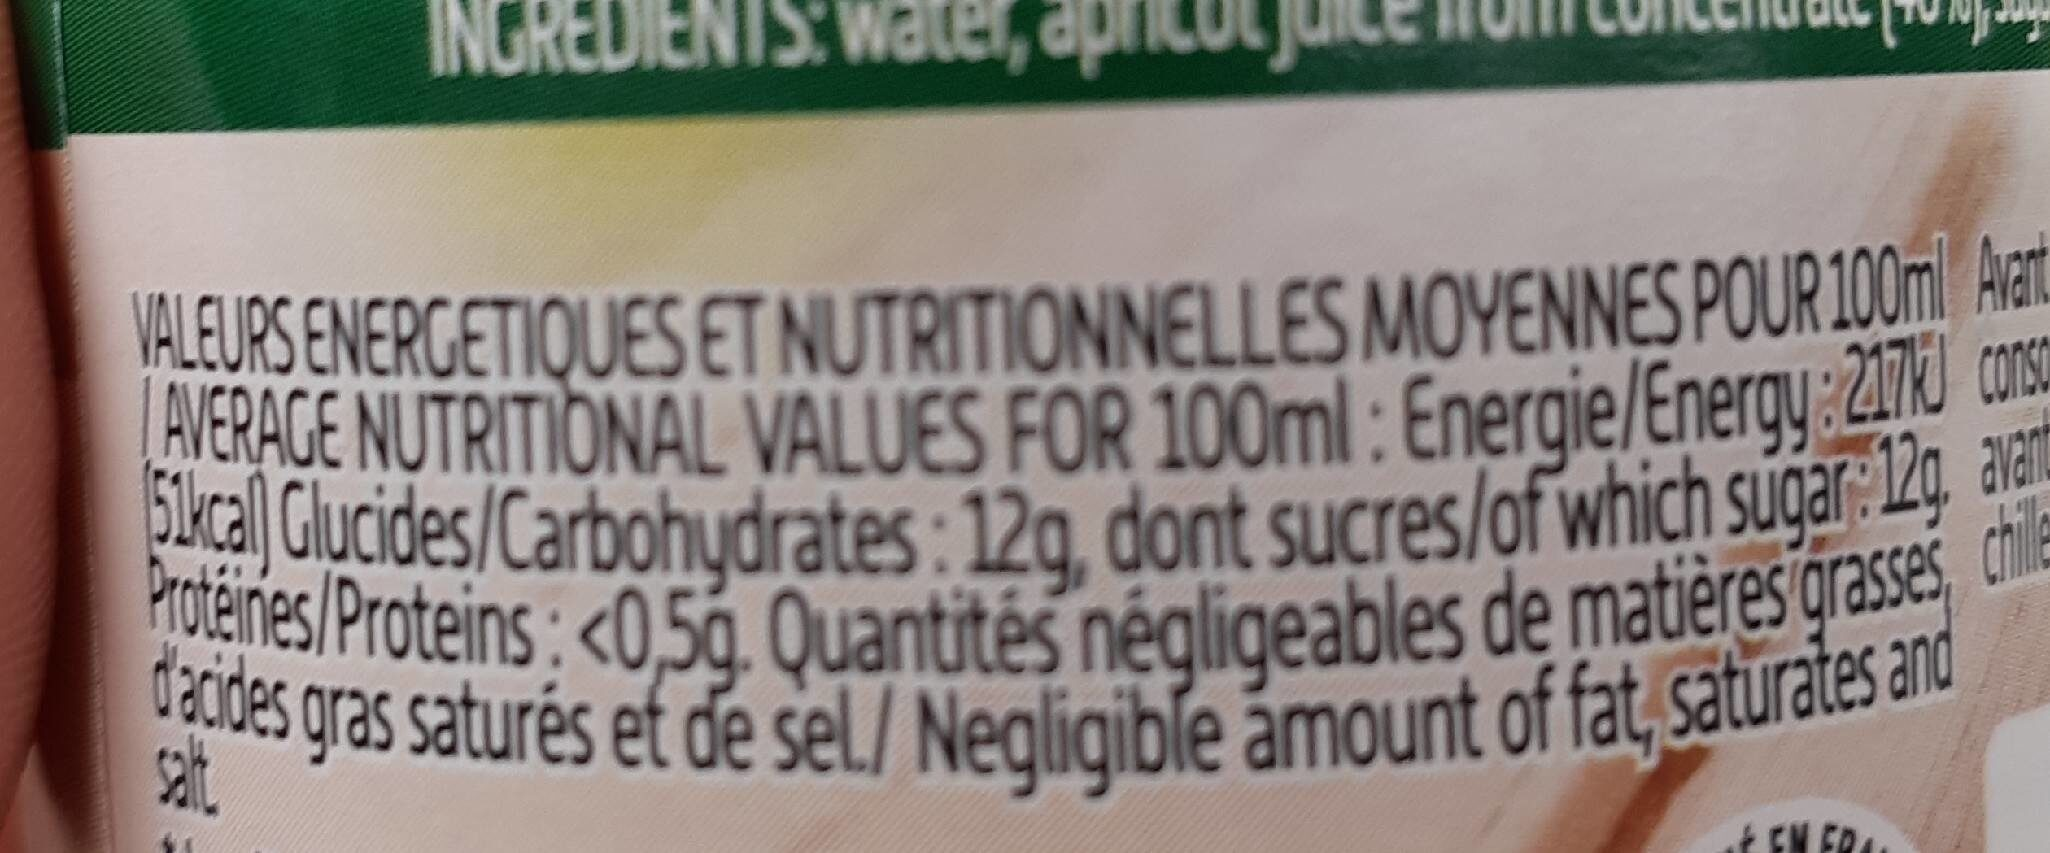 Abricot - Nutrition facts